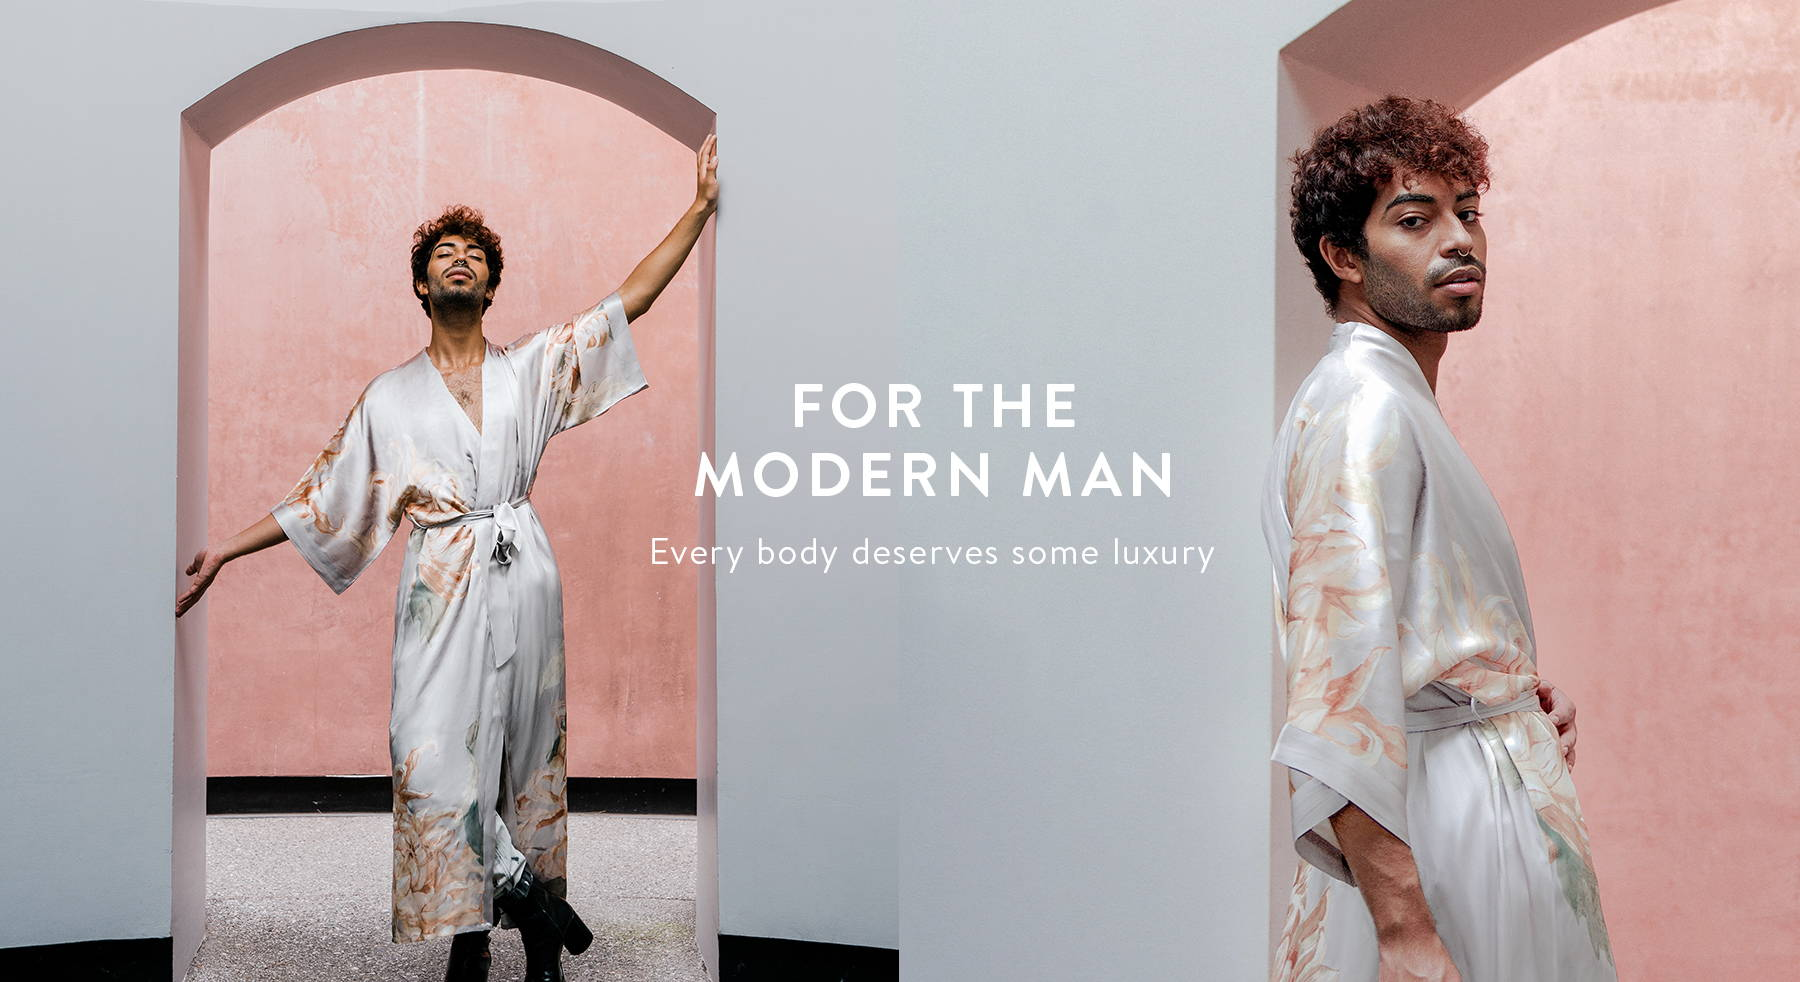 For the Modern Man - Every body deserves some luxury